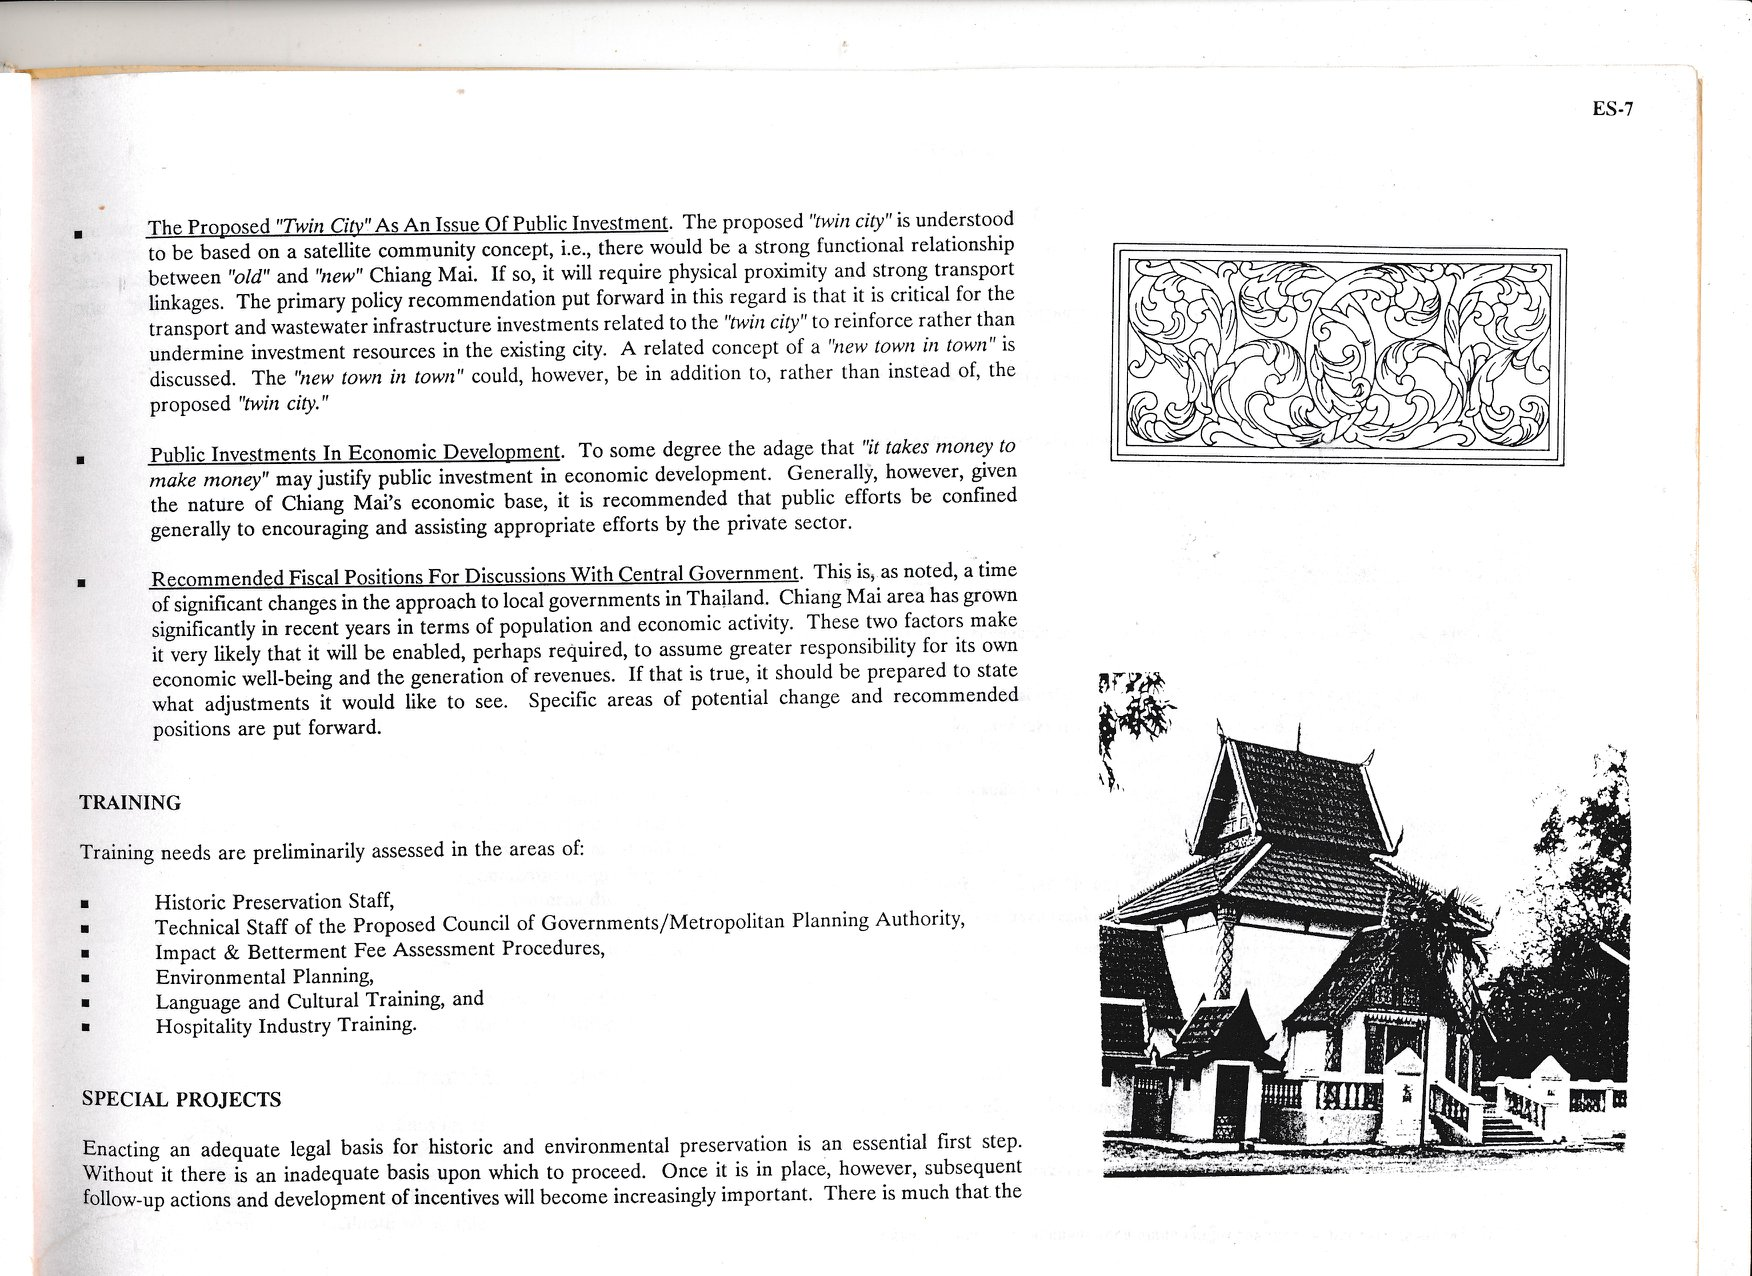 Page 7 of the Chiang Mai Policy-Based Action Plan for historic and environmental preservation